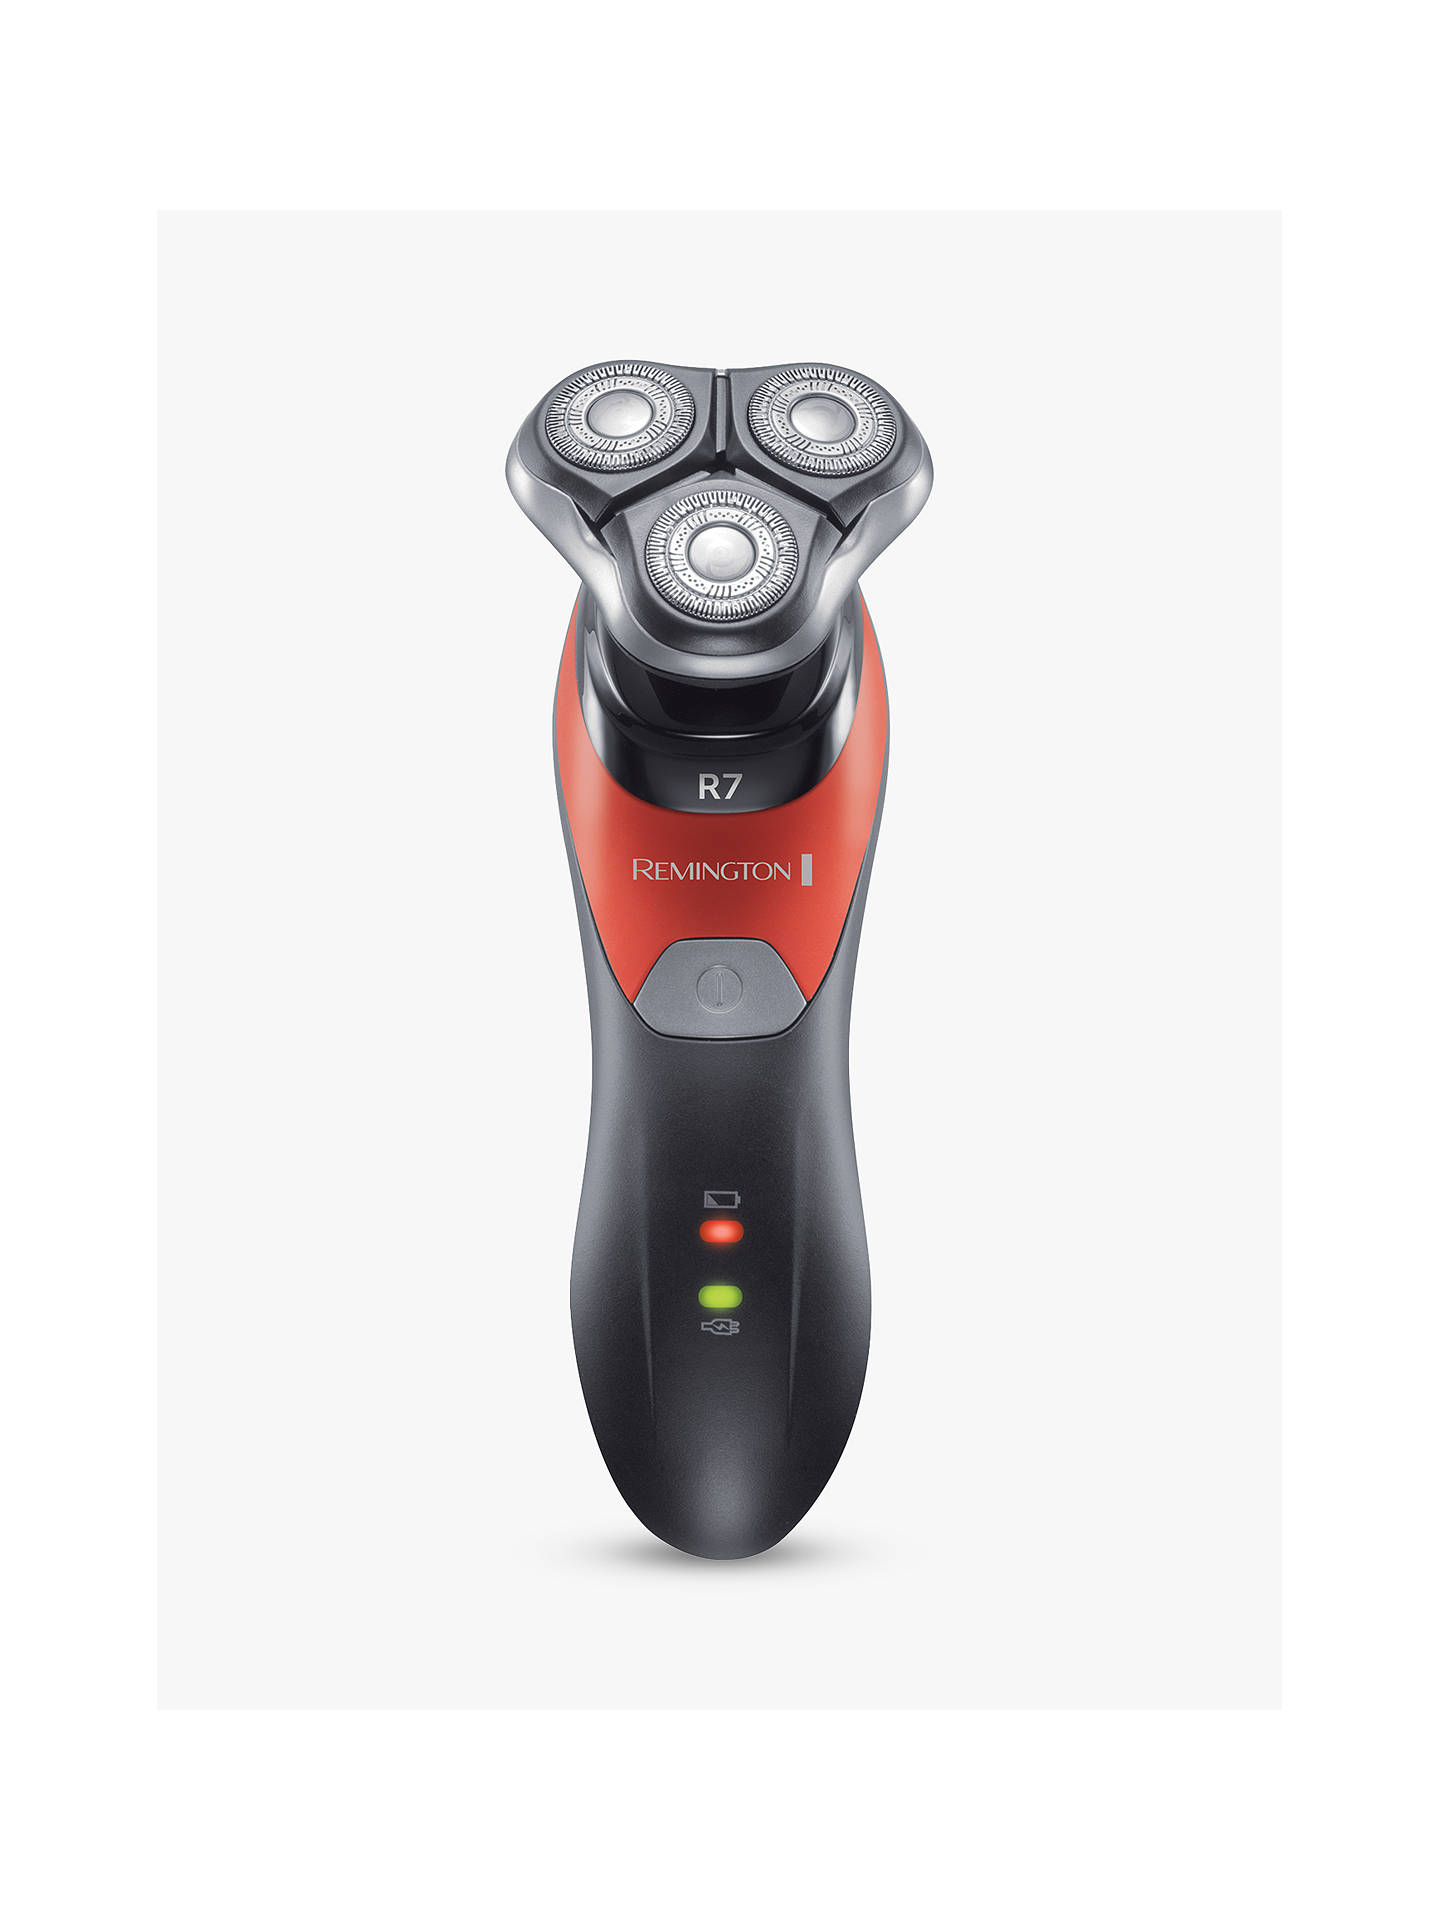 BuyRemington XR1530 R7 Ultimate Electric Rotary Shaver Online at johnlewis.com